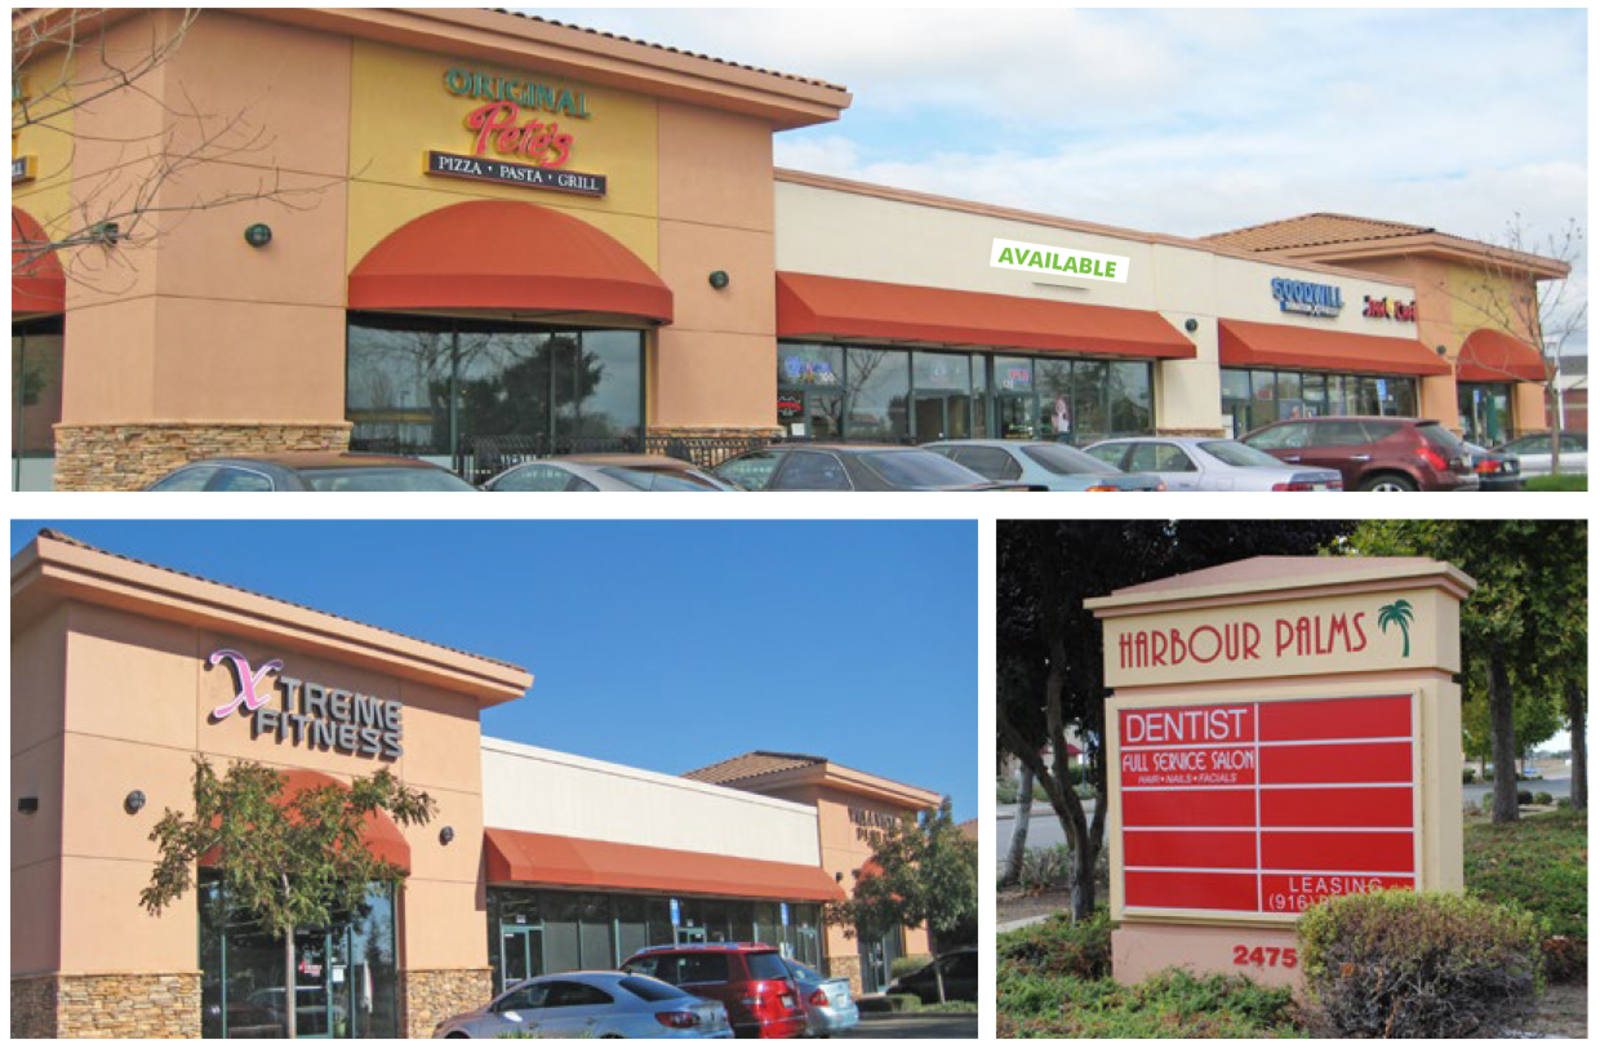 CBRE RetailHarbour Palms2475 Elk Grove Blvd  Photo